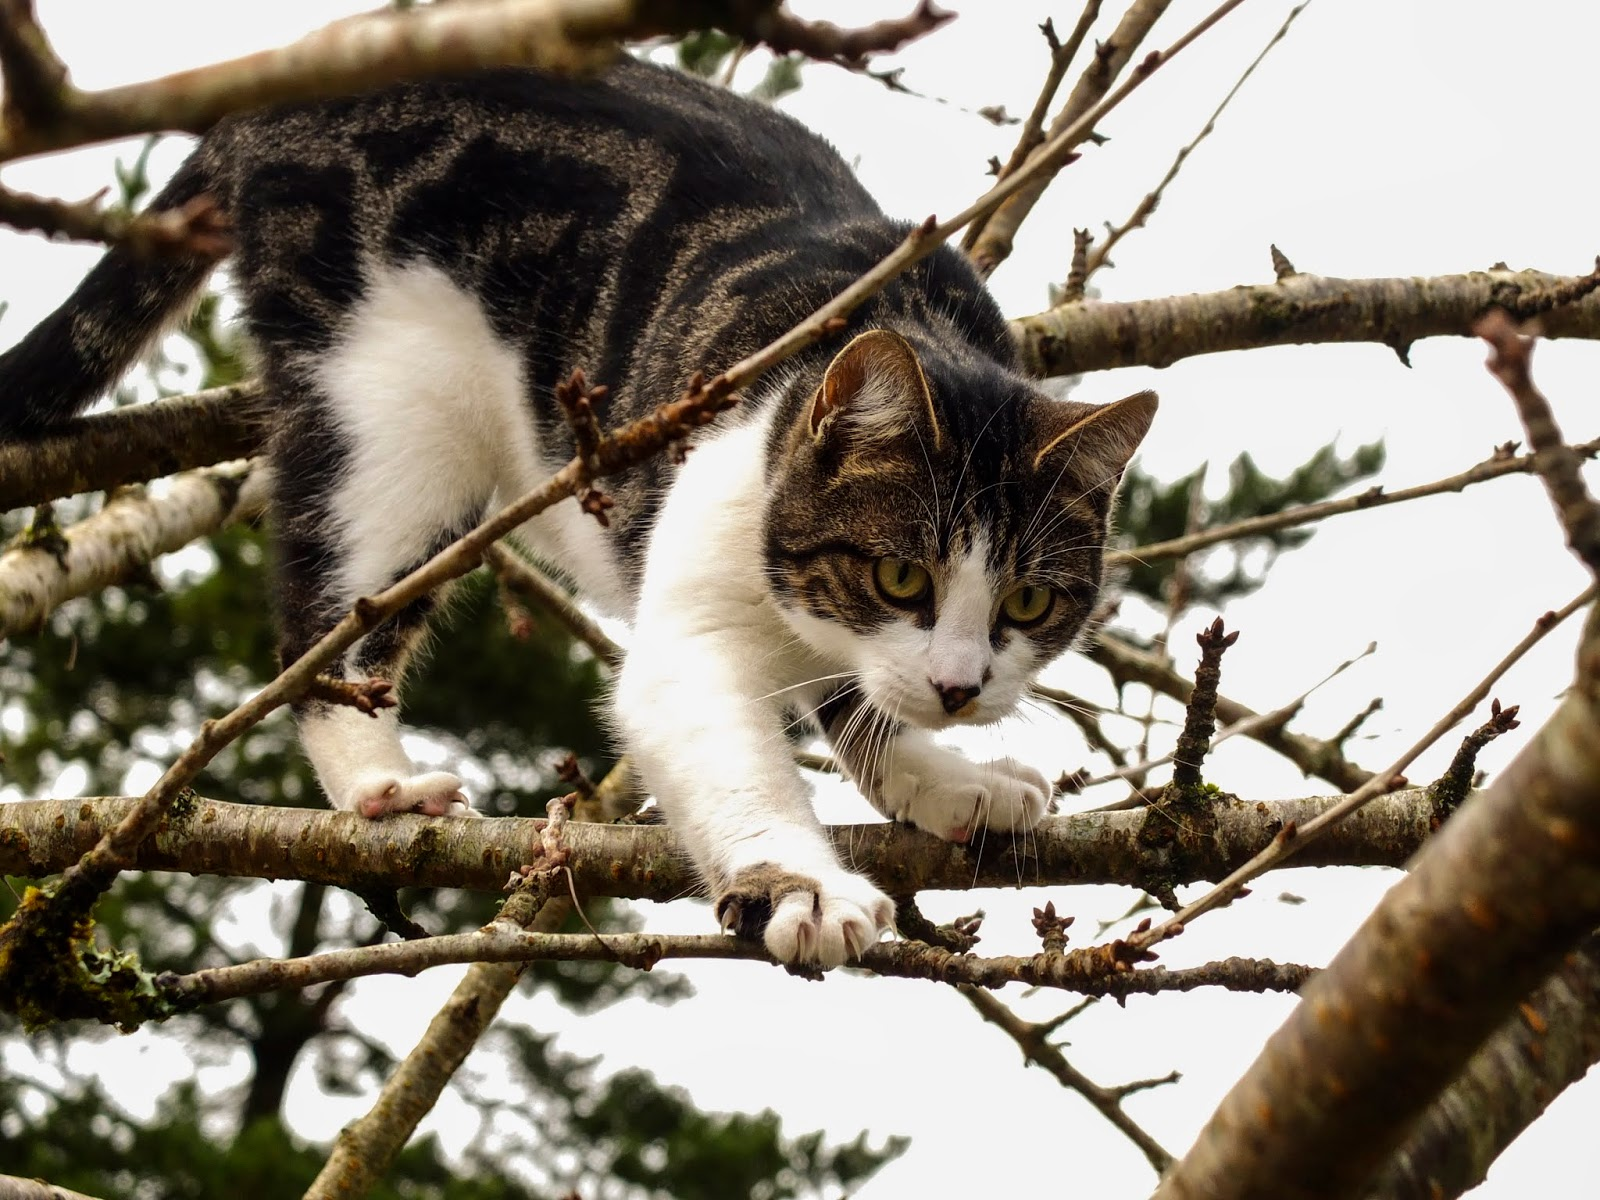 A cat balancing on branches up a cherry tree.